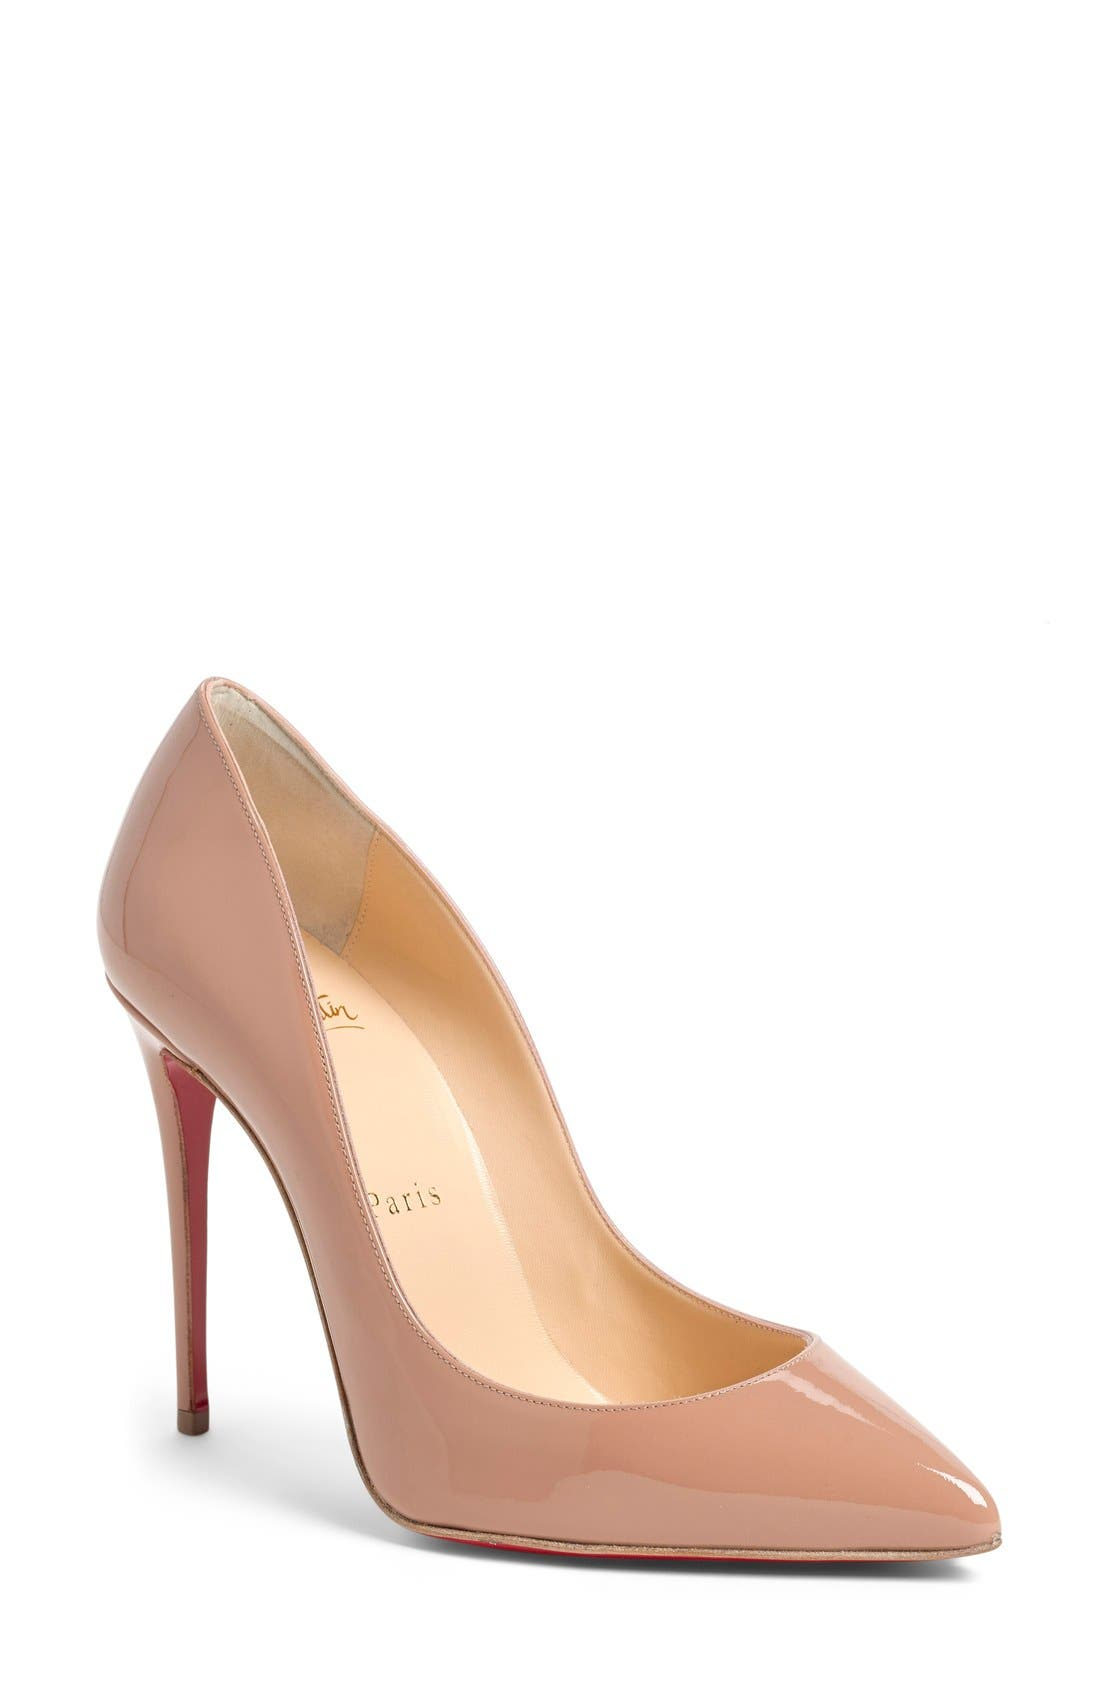 Alternate Image 1 Selected - Christian Louboutin 'Pigalle Follies' Pointy Toe Pump